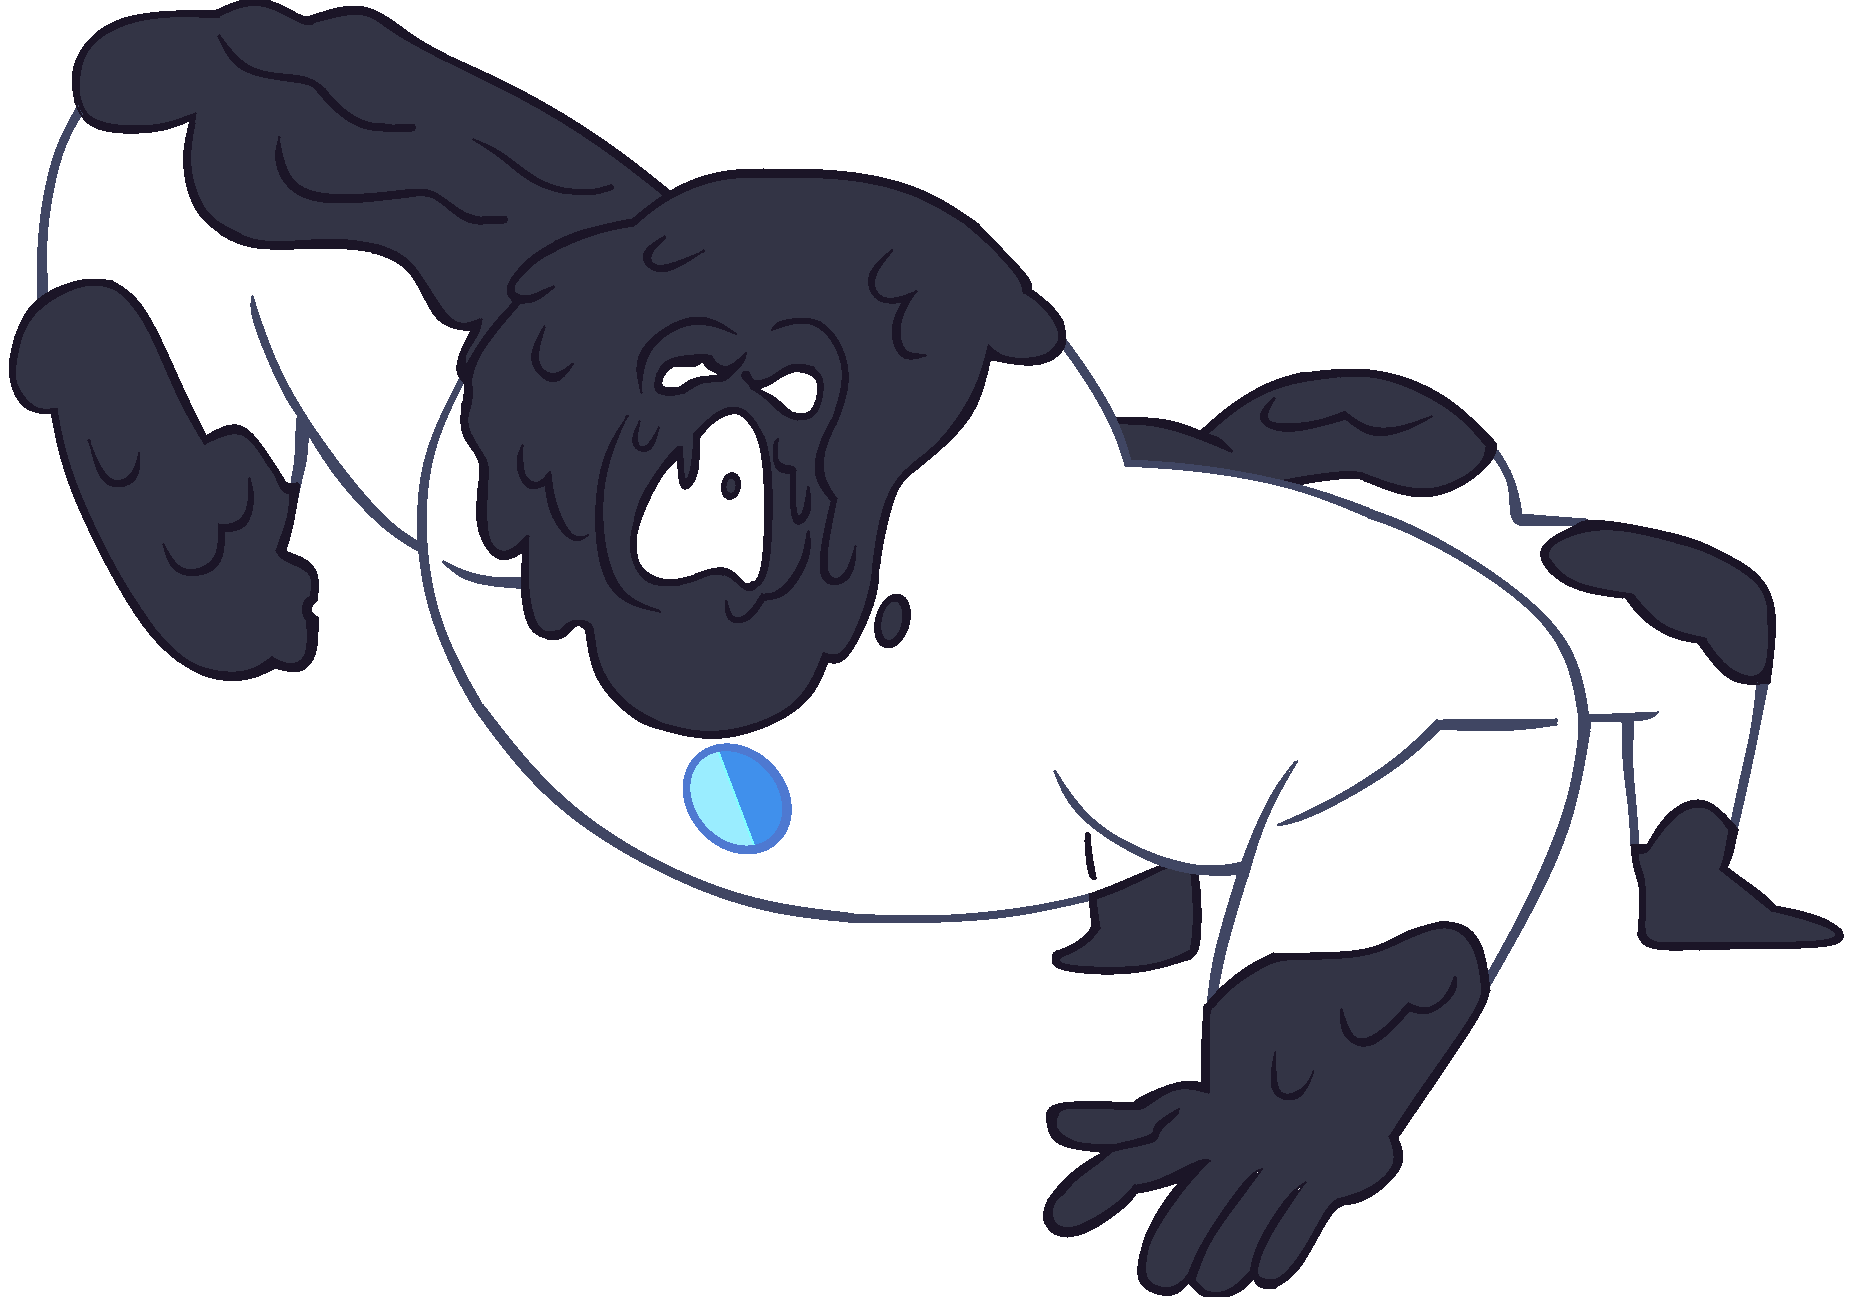 https://static.tvtropes.org/pmwiki/pub/images/invisible_monster_png.png